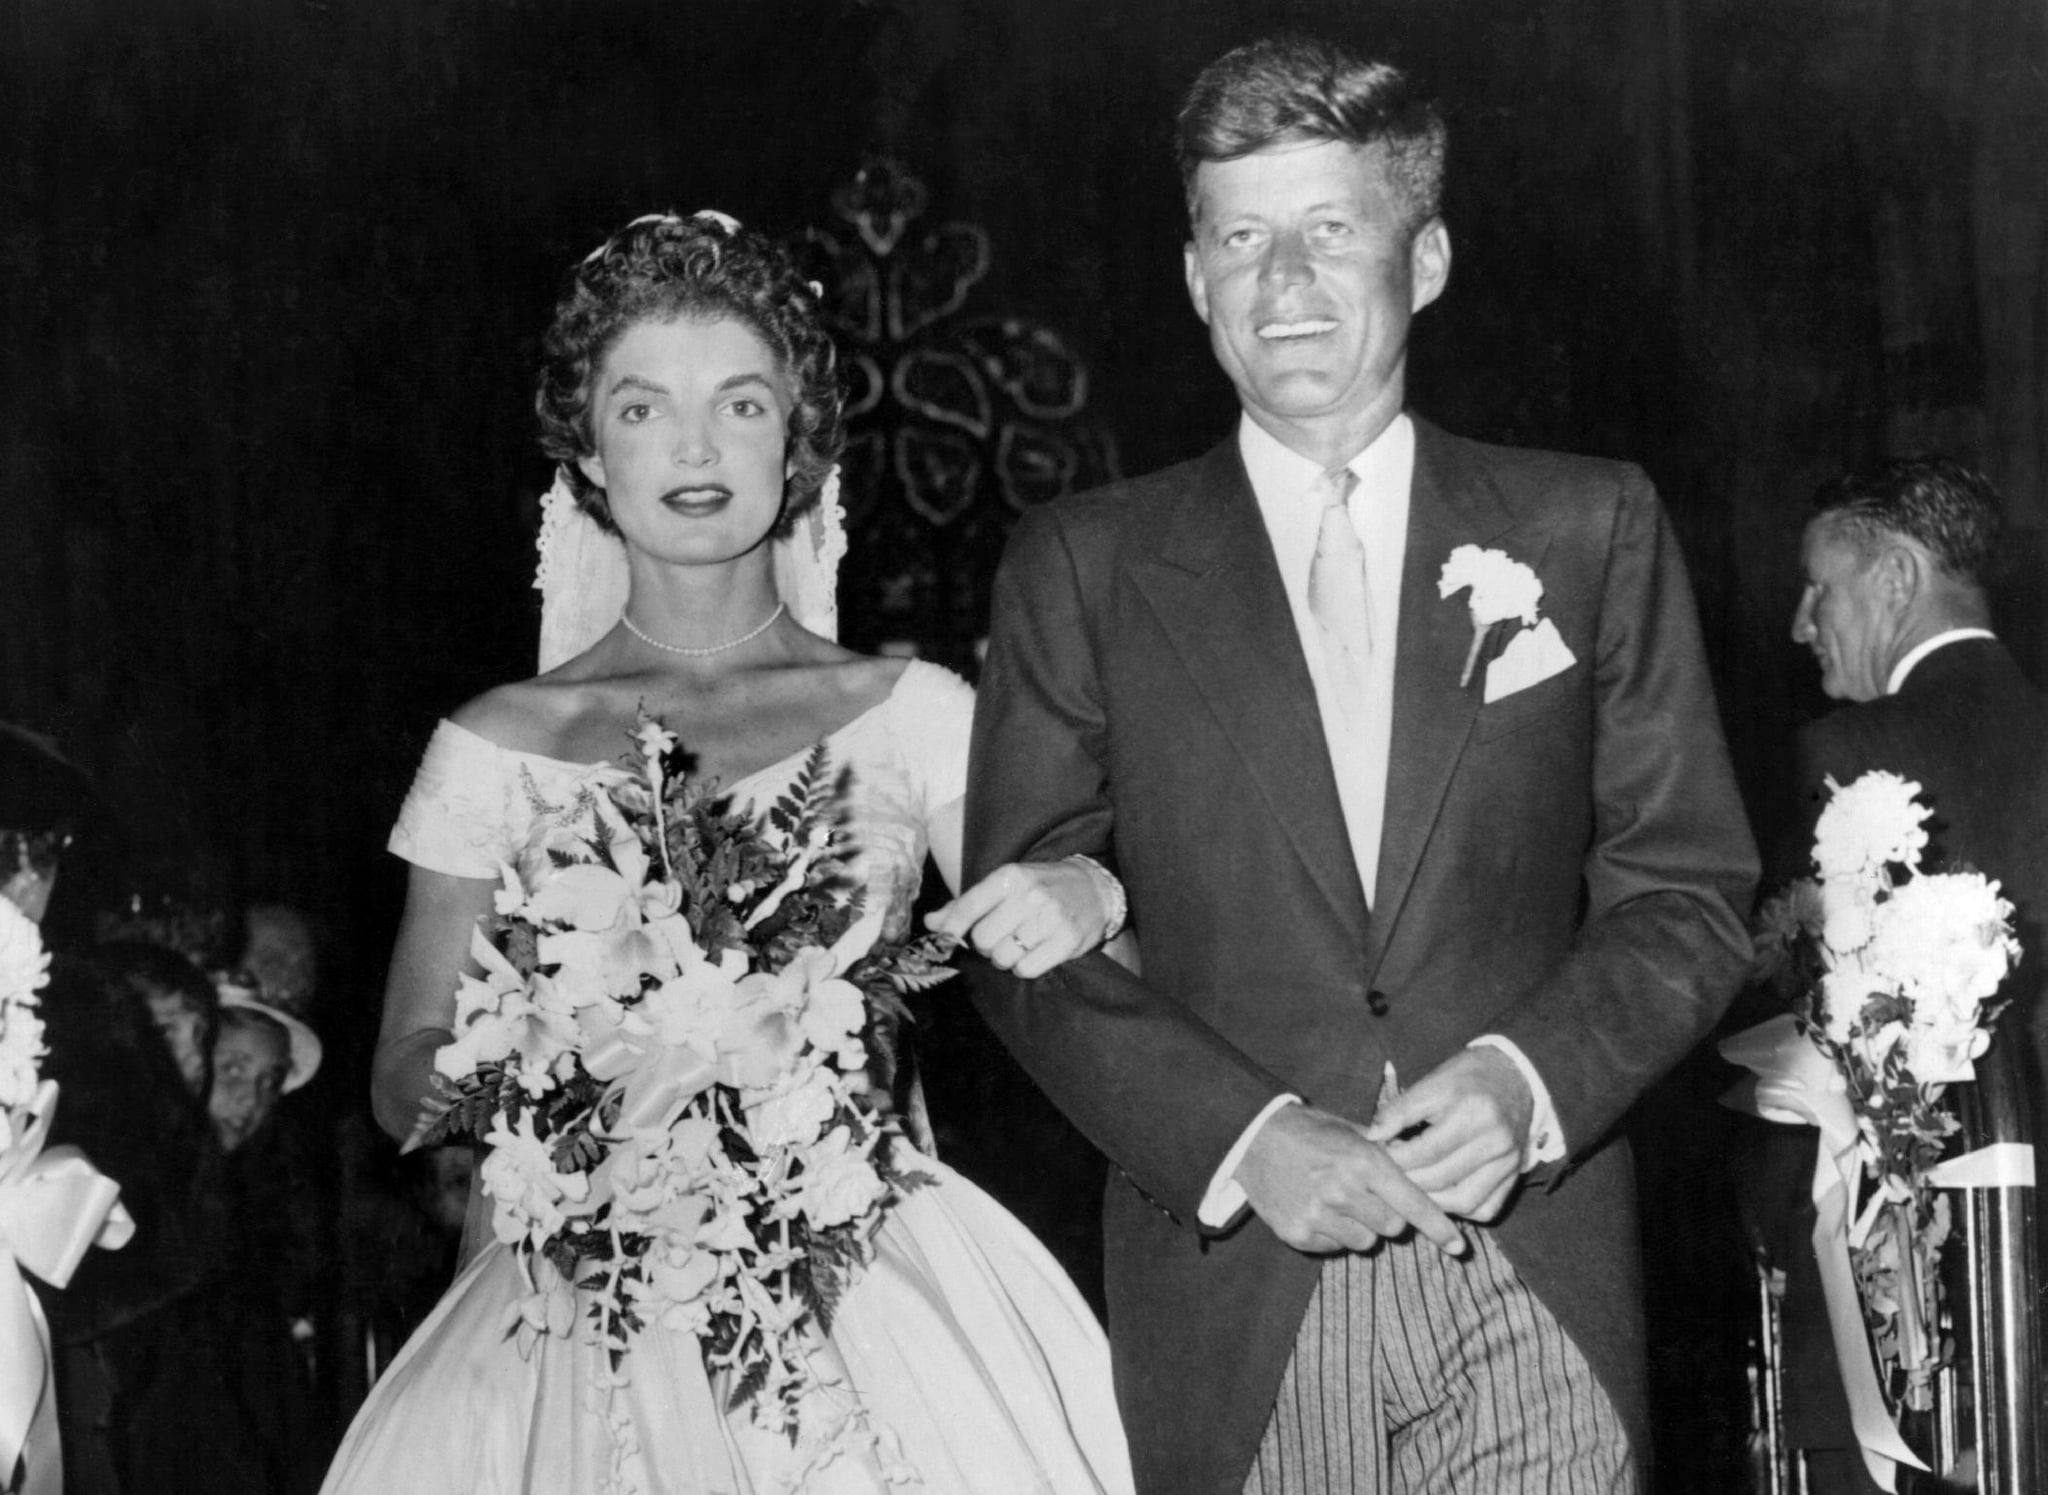 Jackie and john f kennedy wedding details popsugar celebrity 12 marks the 64th anniversary of jackie and john f kennedys wedding and the special day has brought up renewed interest in the couples nuptials junglespirit Gallery